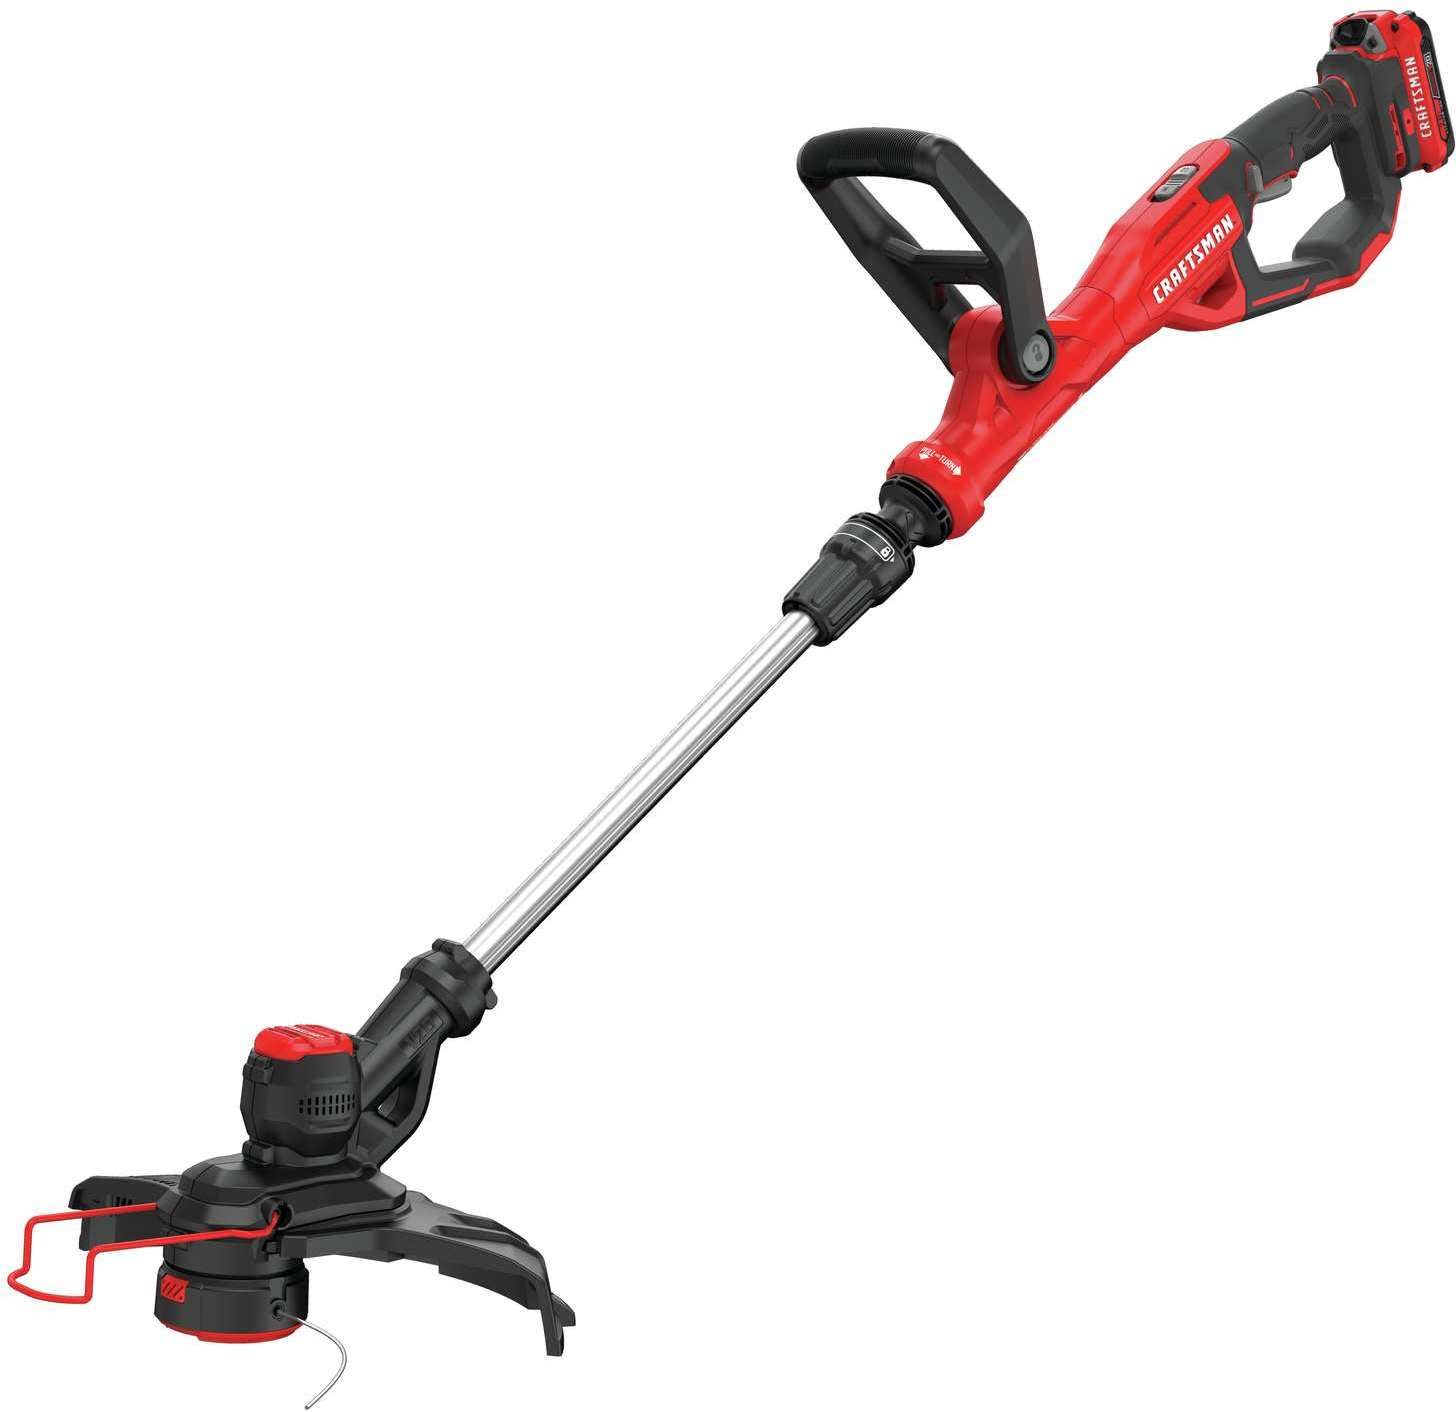 "Craftsman 20V 13"" Trimmer/Edger Kit"